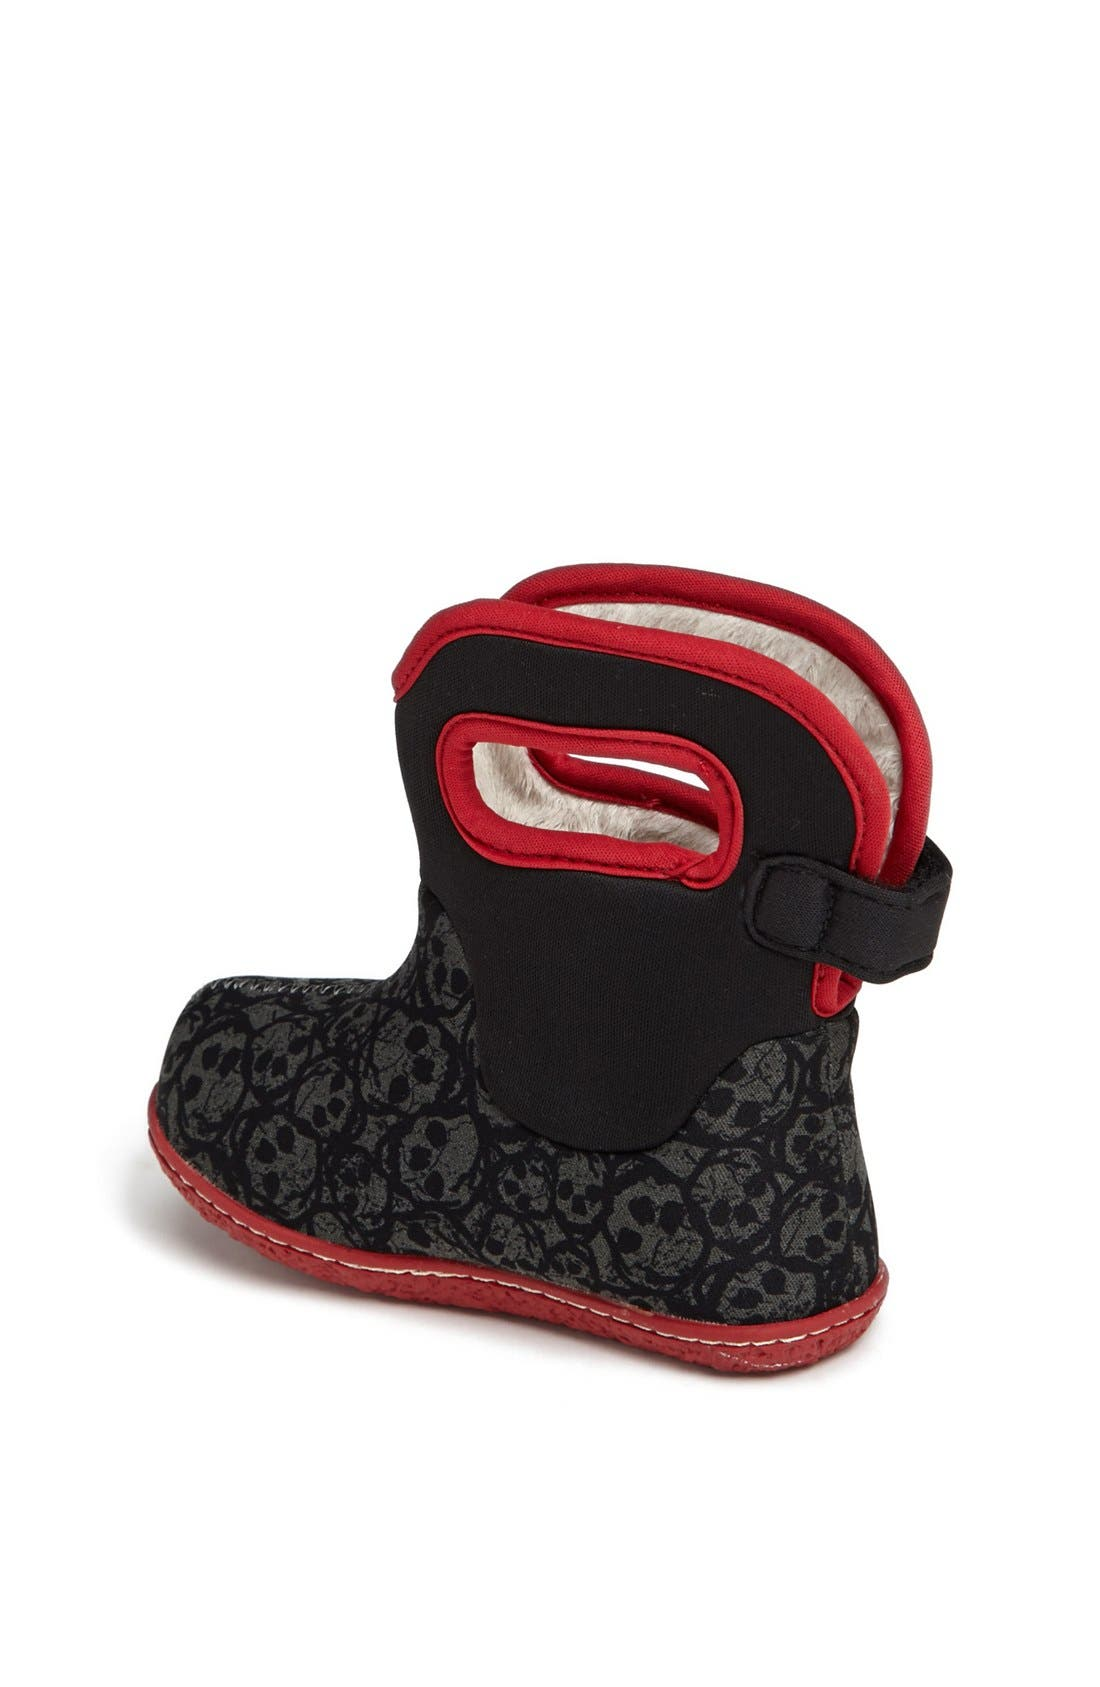 Alternate Image 2  - Bogs 'Baby Bogs - Skulls' Waterproof Boot (Baby, Walker & Toddler)